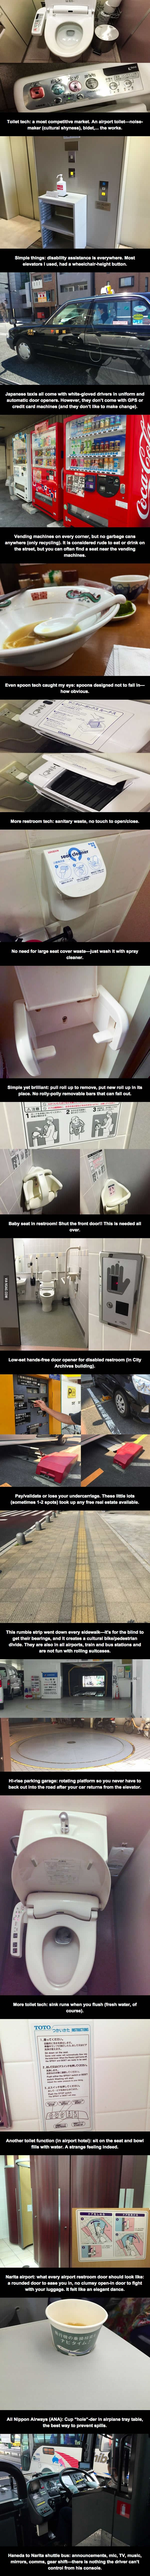 A man visited Japan once... decided to detail the lesser known facilities there